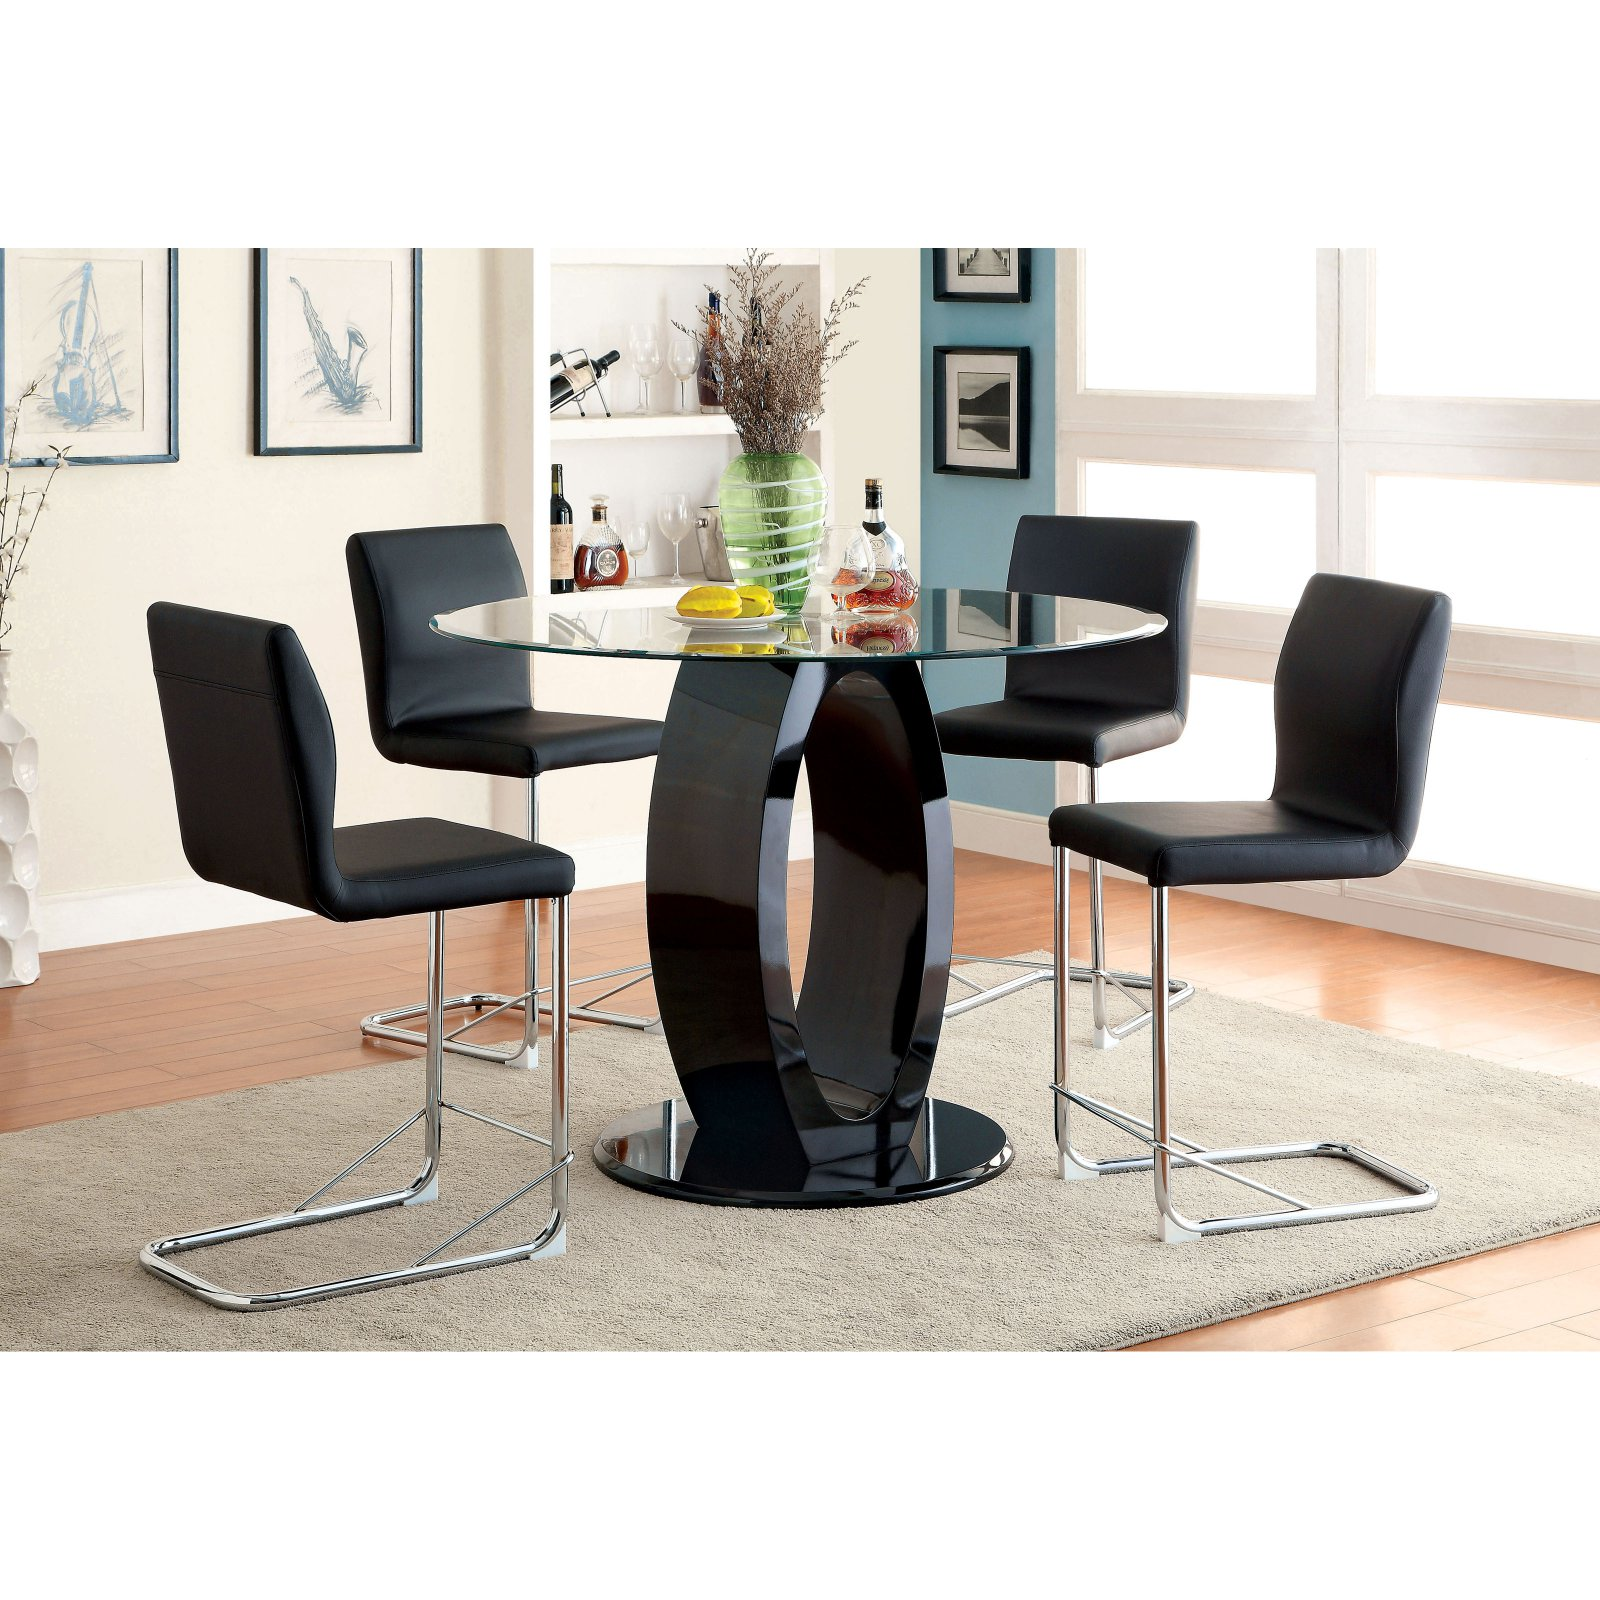 Furniture of America Damore Contemporary 5 Piece Counter Height High Gloss Round Dining Table Set - Black